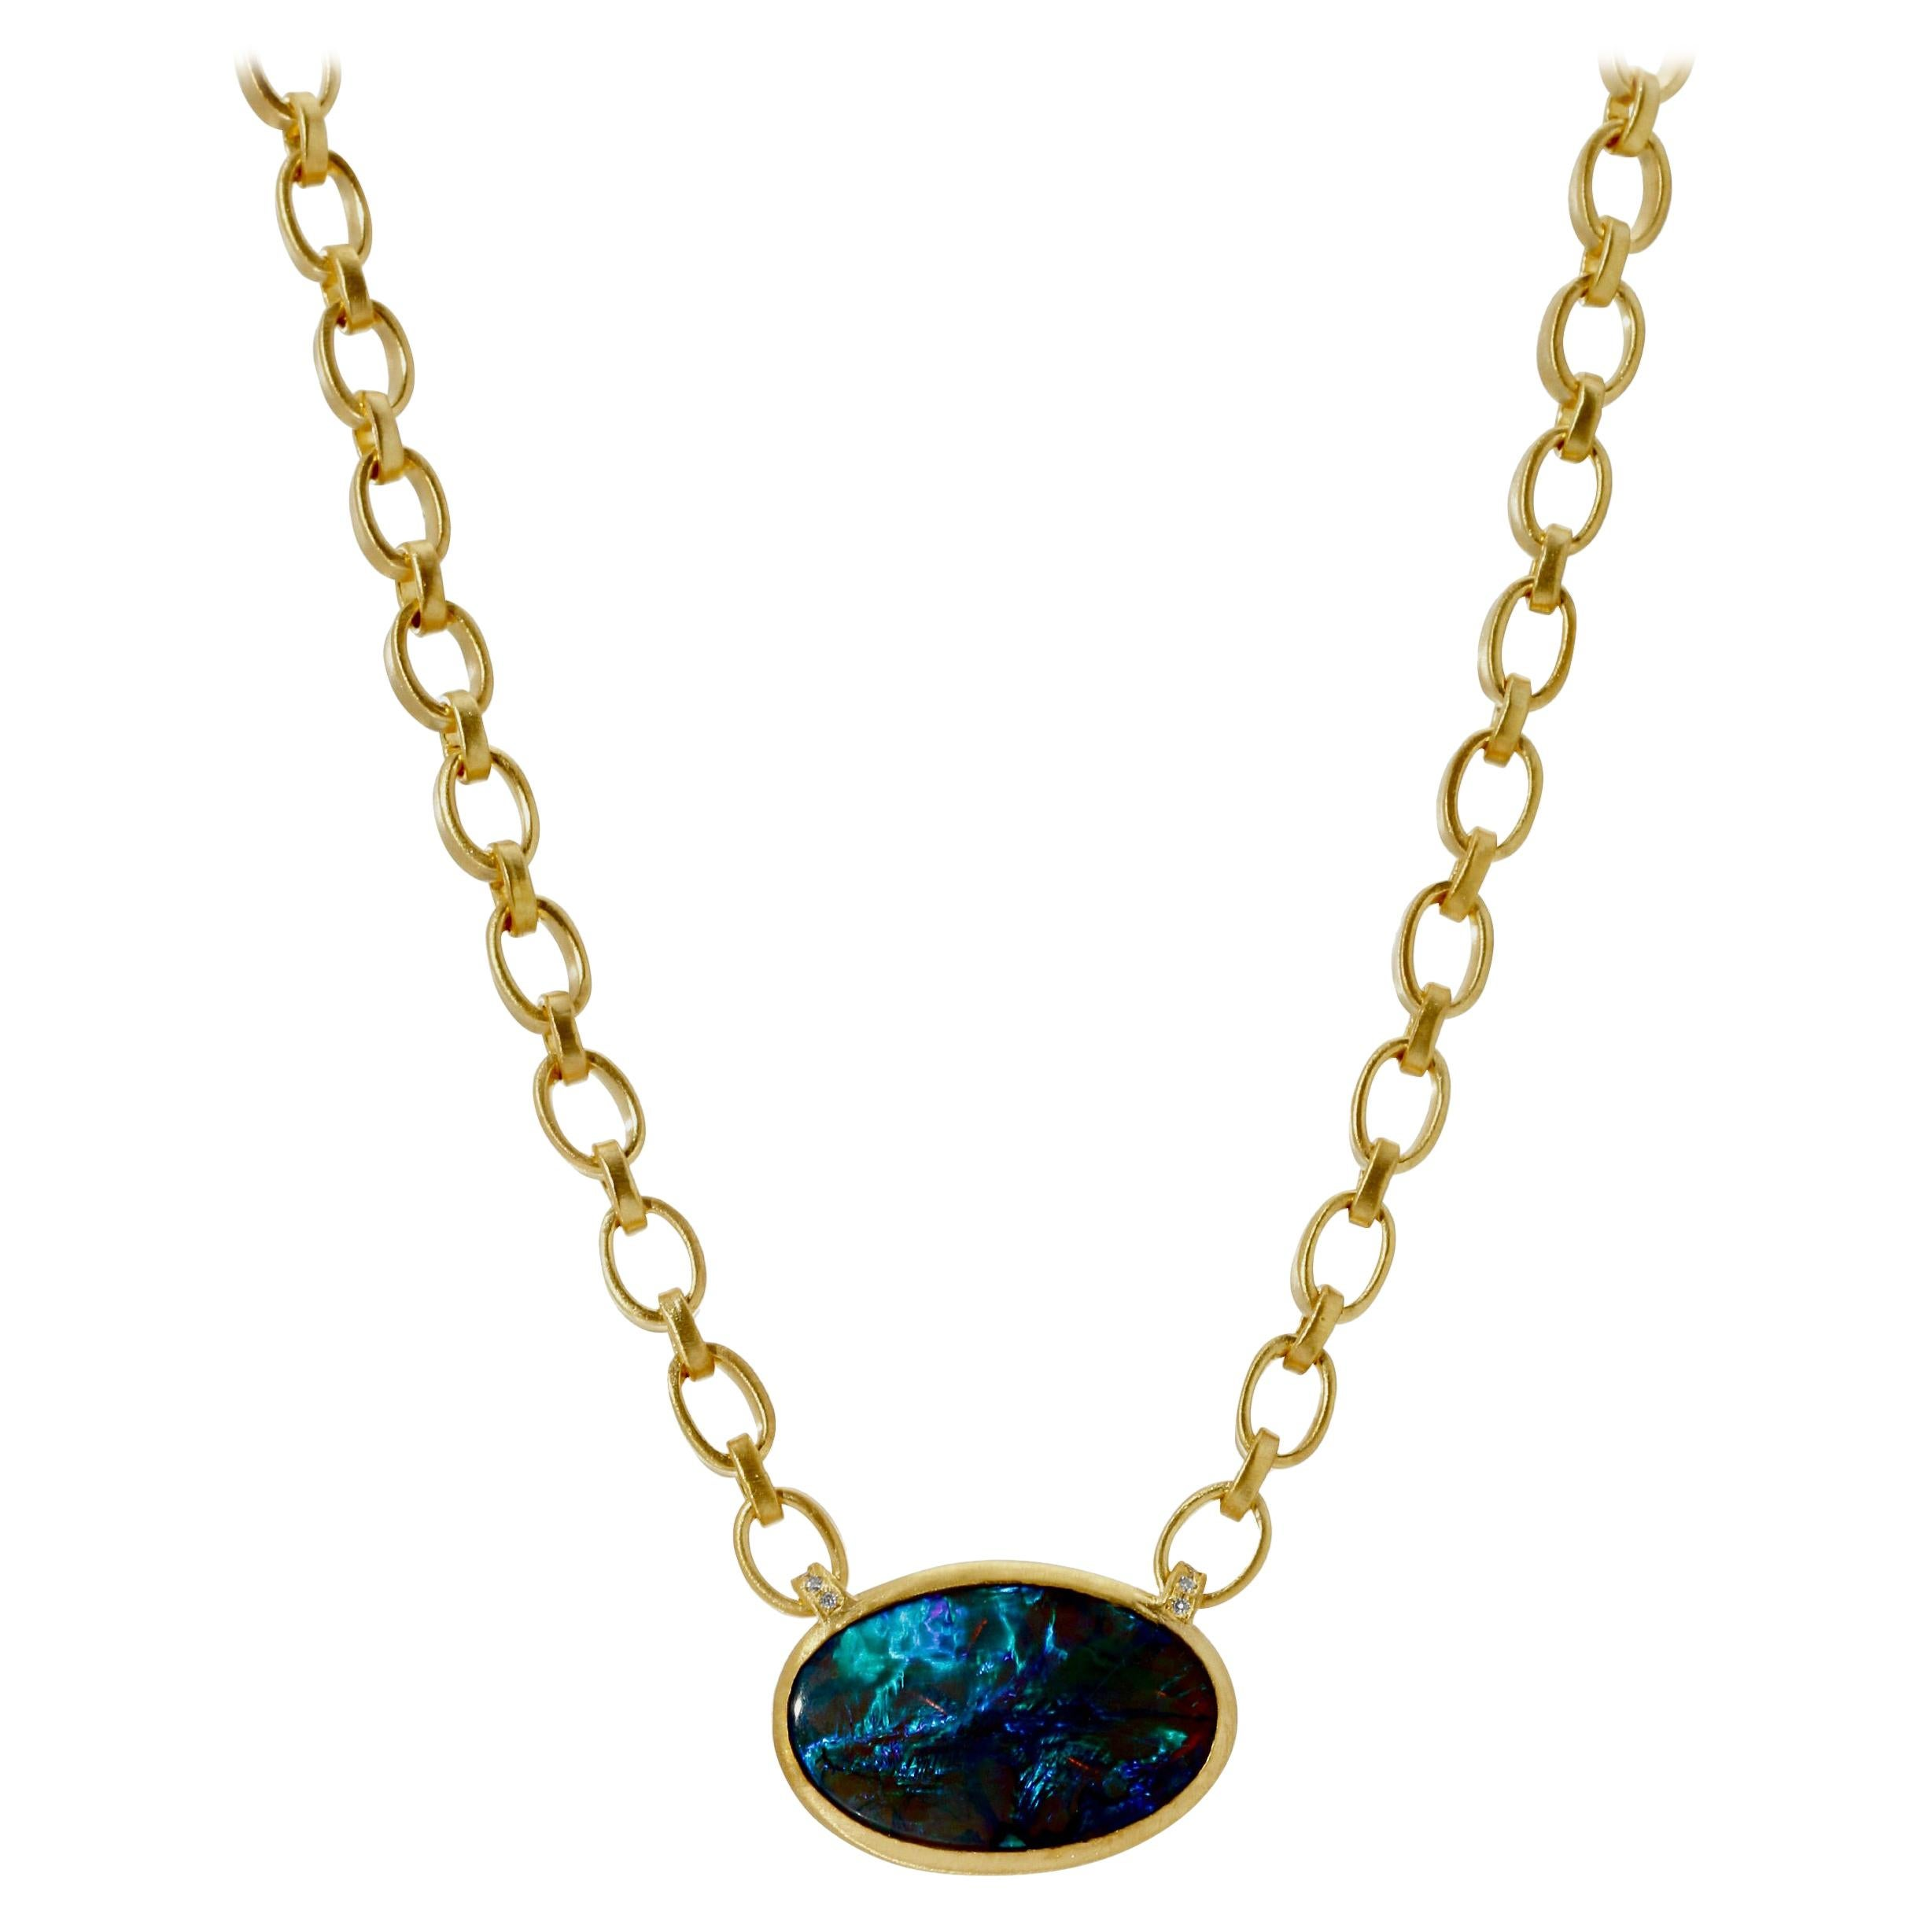 Opal Pendant Necklace on 18k Yellow Gold Handmade Chain with Toggle